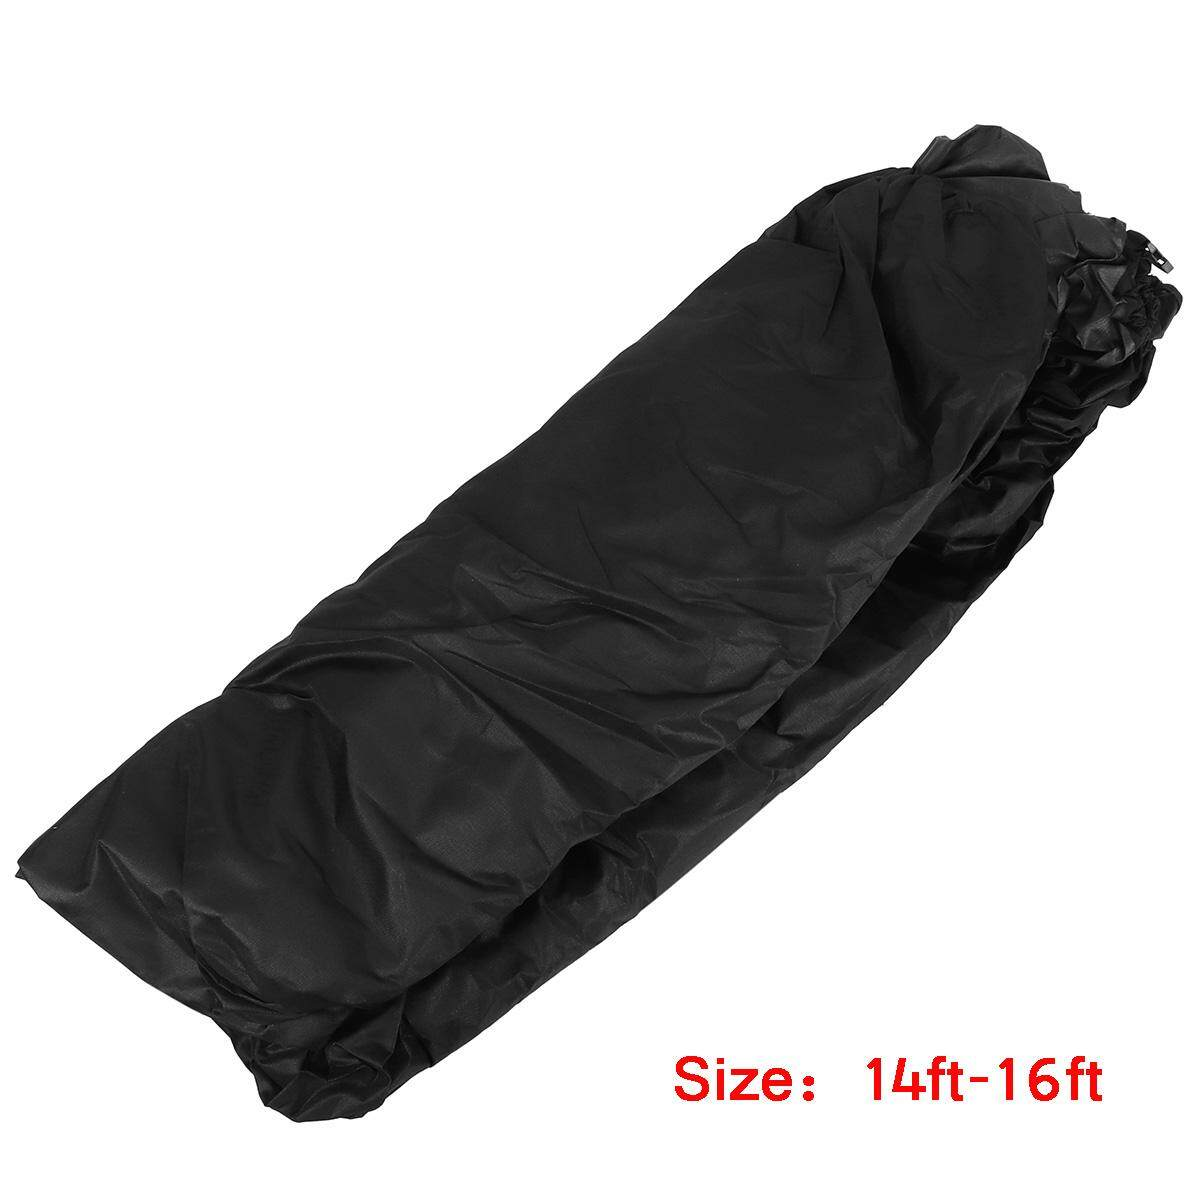 14ft-16ft Trailerable Boat Cover - intl